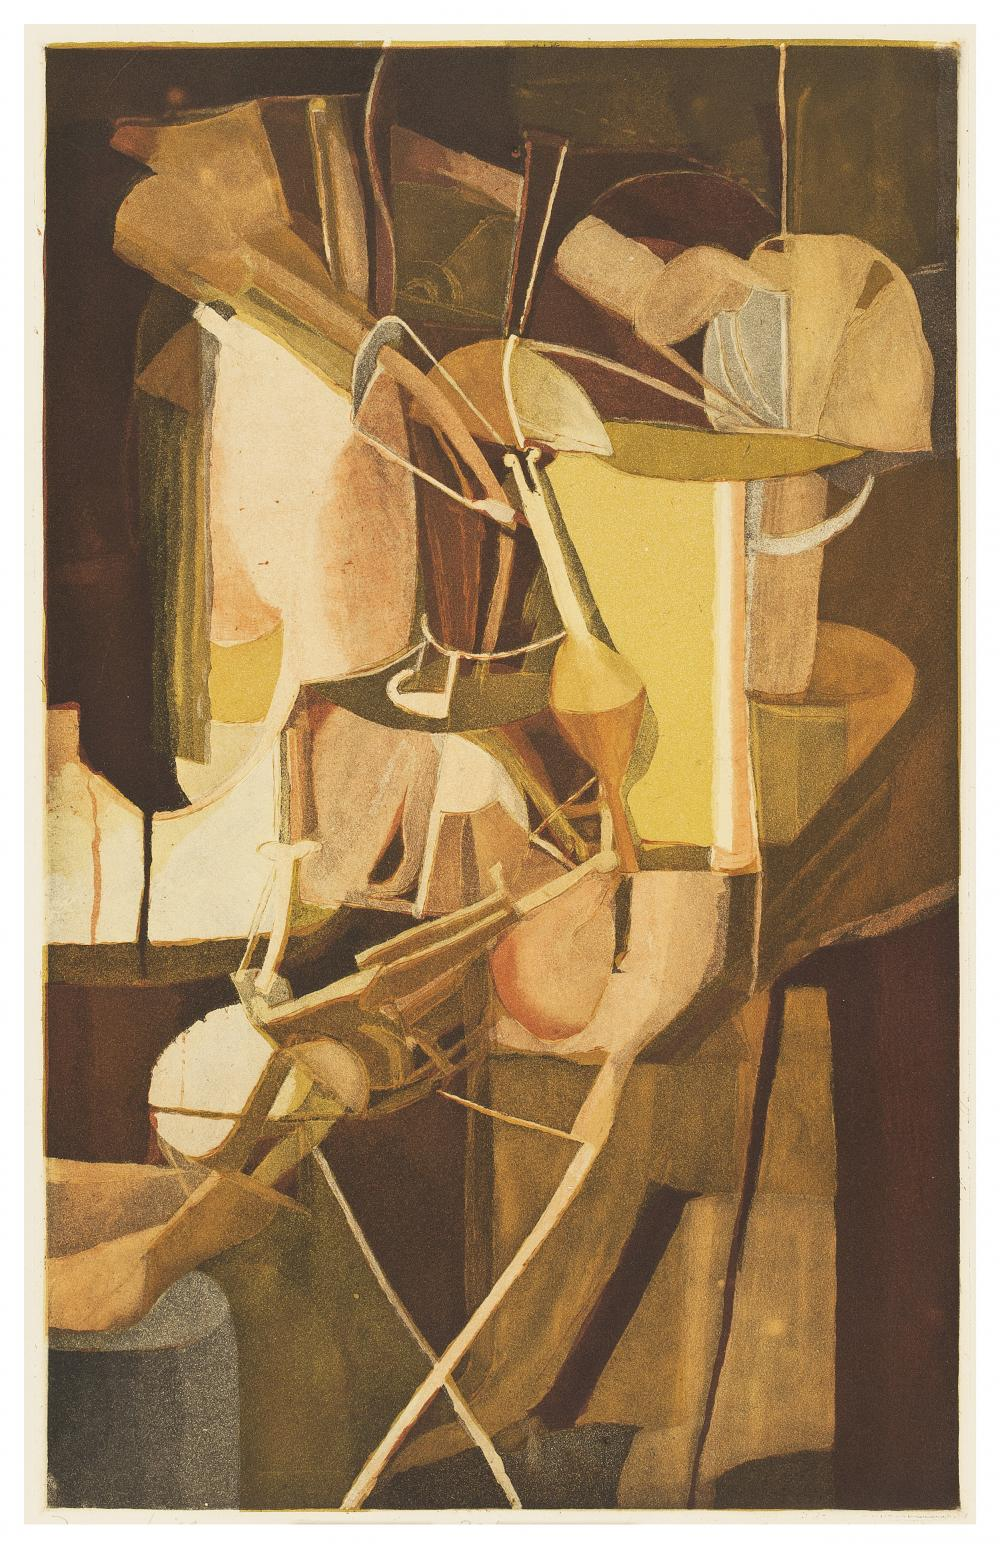 Jacques Villon; Marcel Duchamp, La Mariée [The Bride], 1934